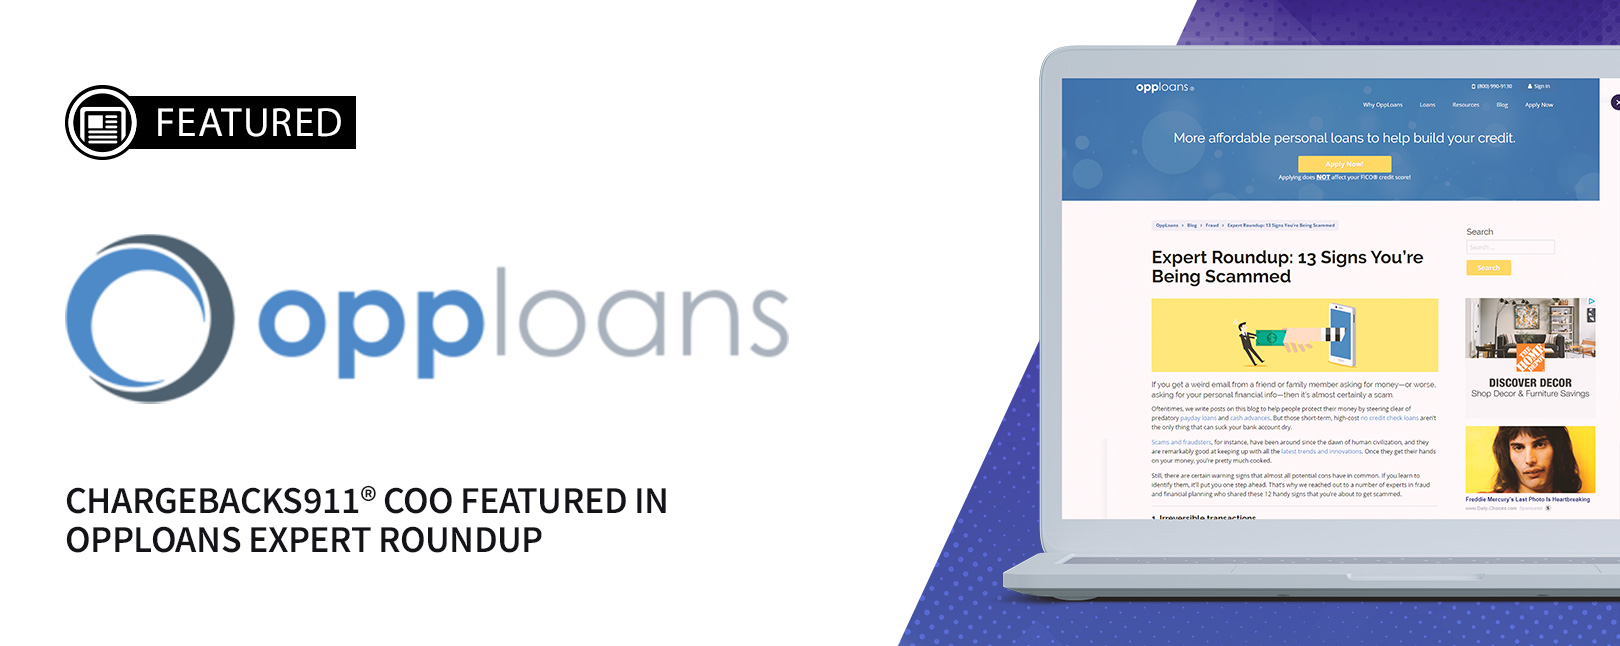 Chargebacks911 COO Featured in OppLoans Expert Roundup